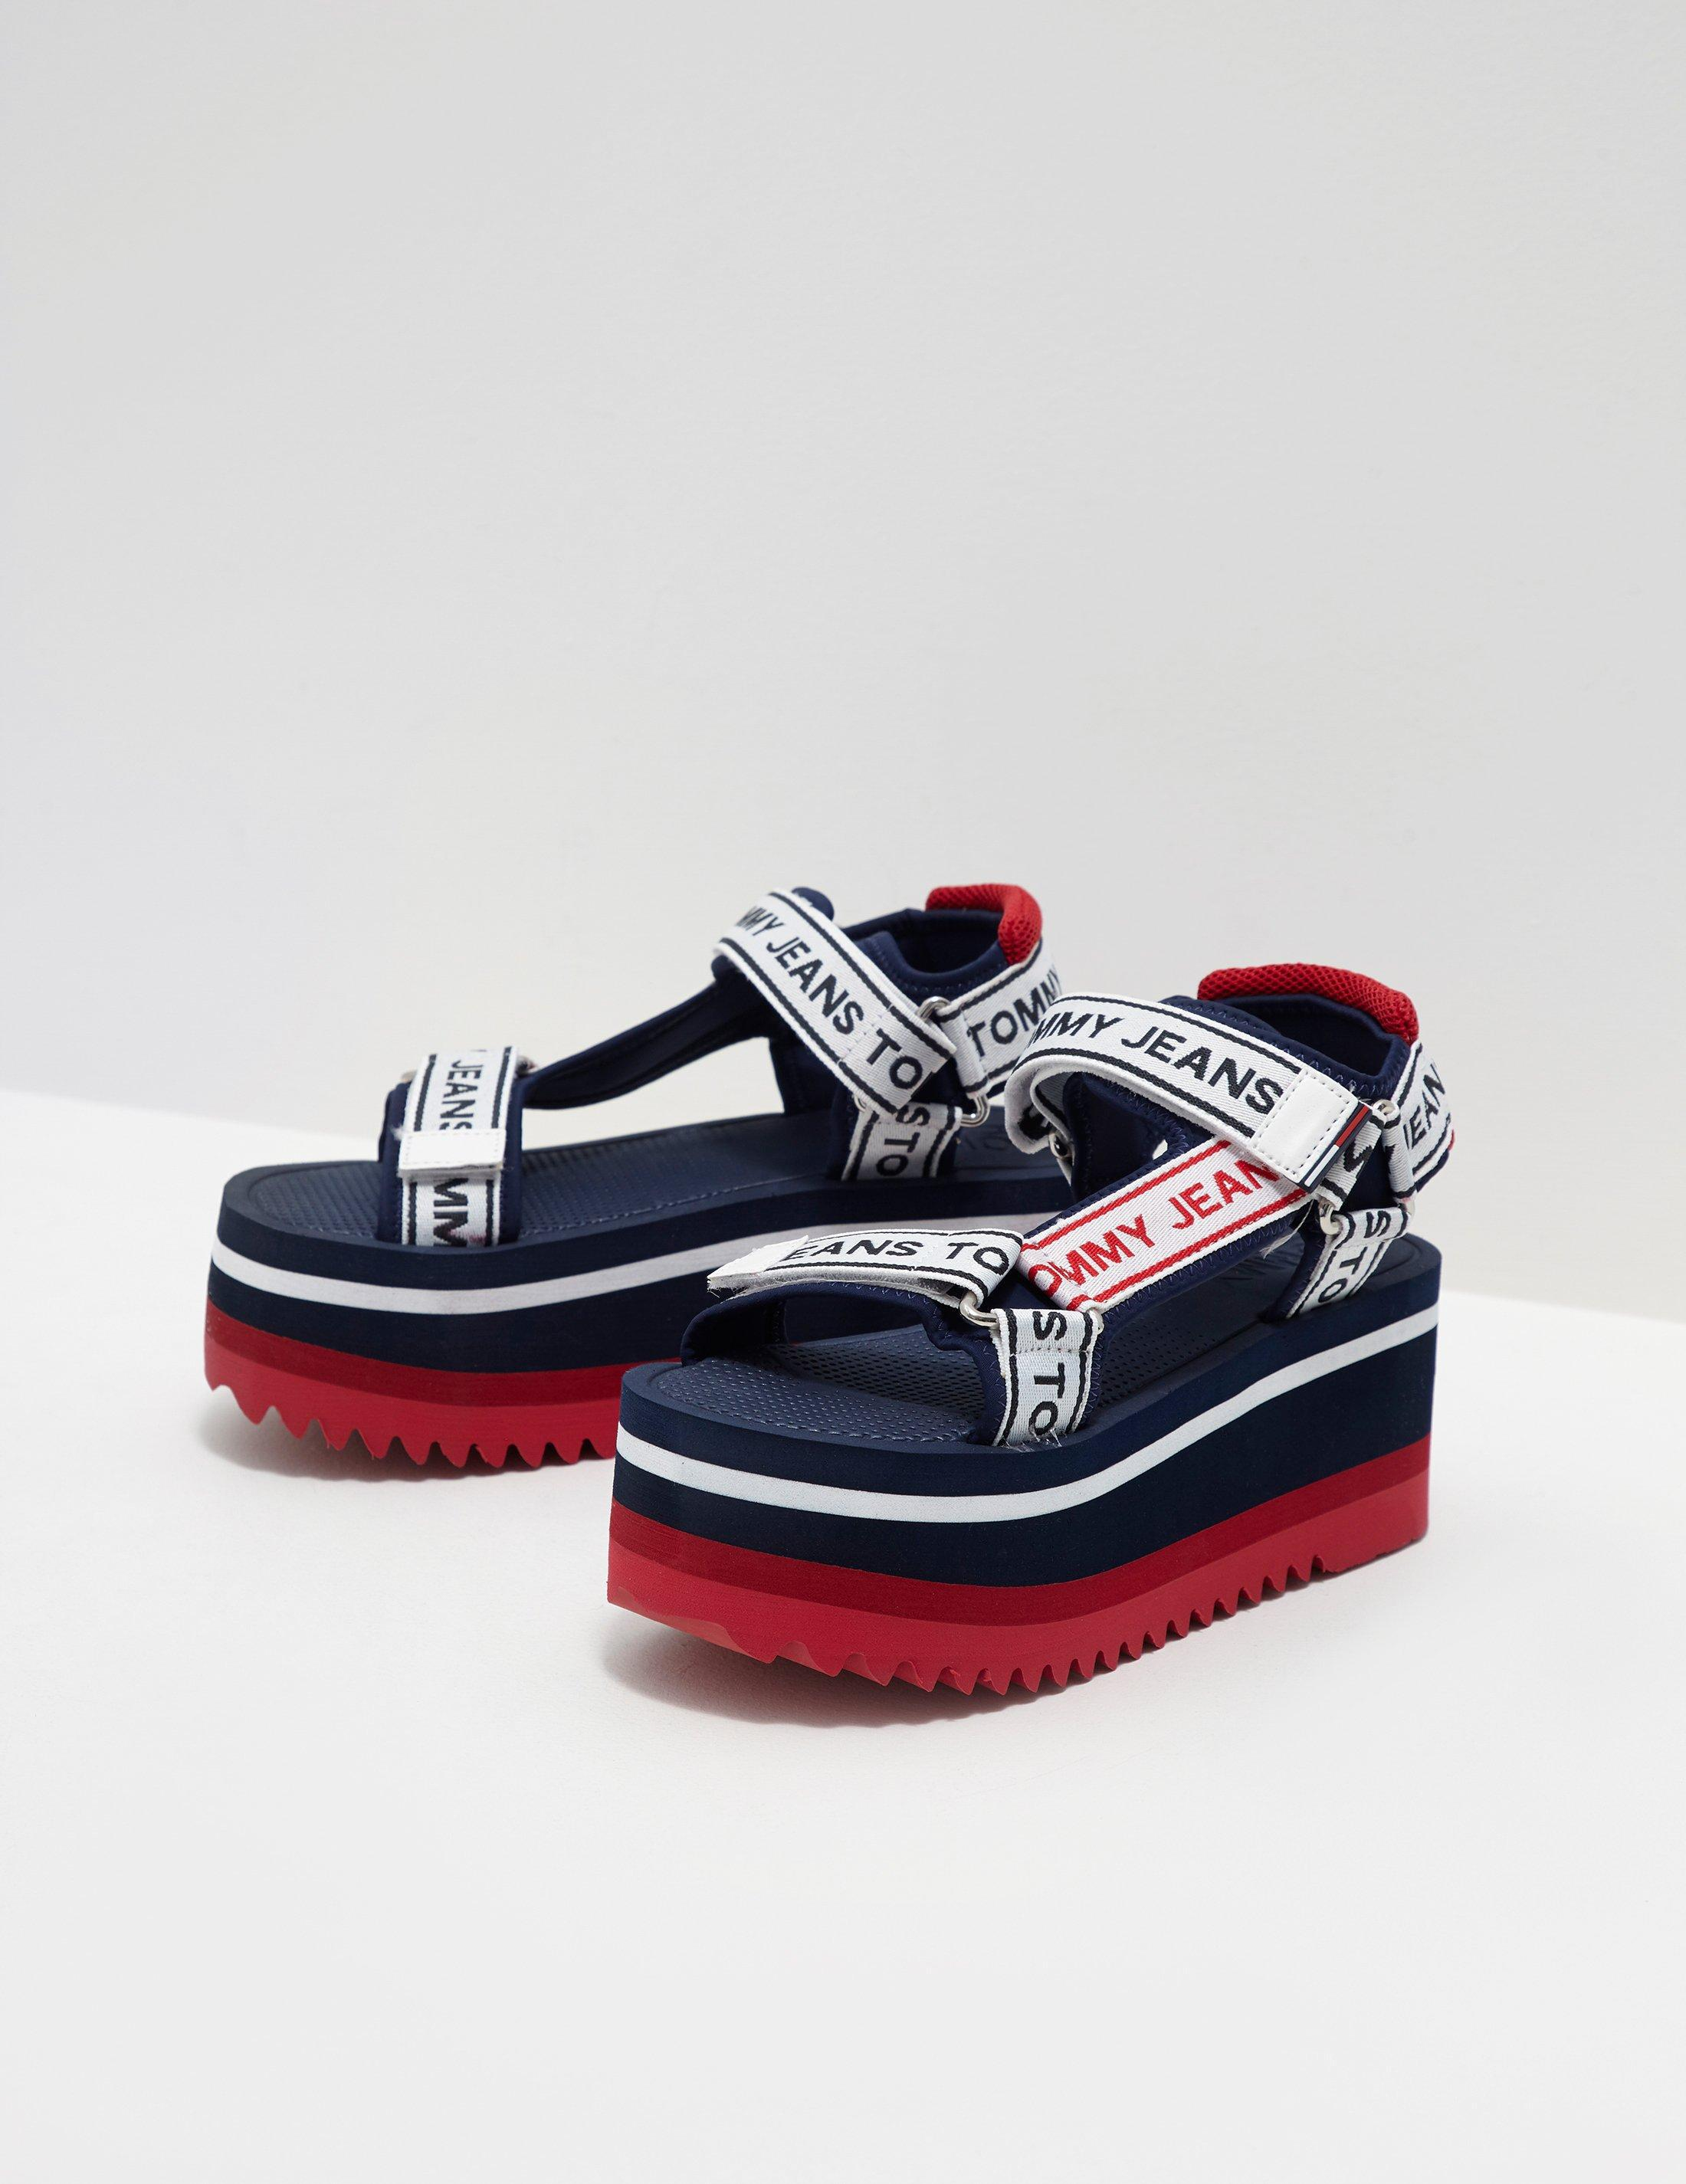 47e7c4c50bd Lyst - Tommy Hilfiger Womens Technical Platform Sandals Navy Blue in ...